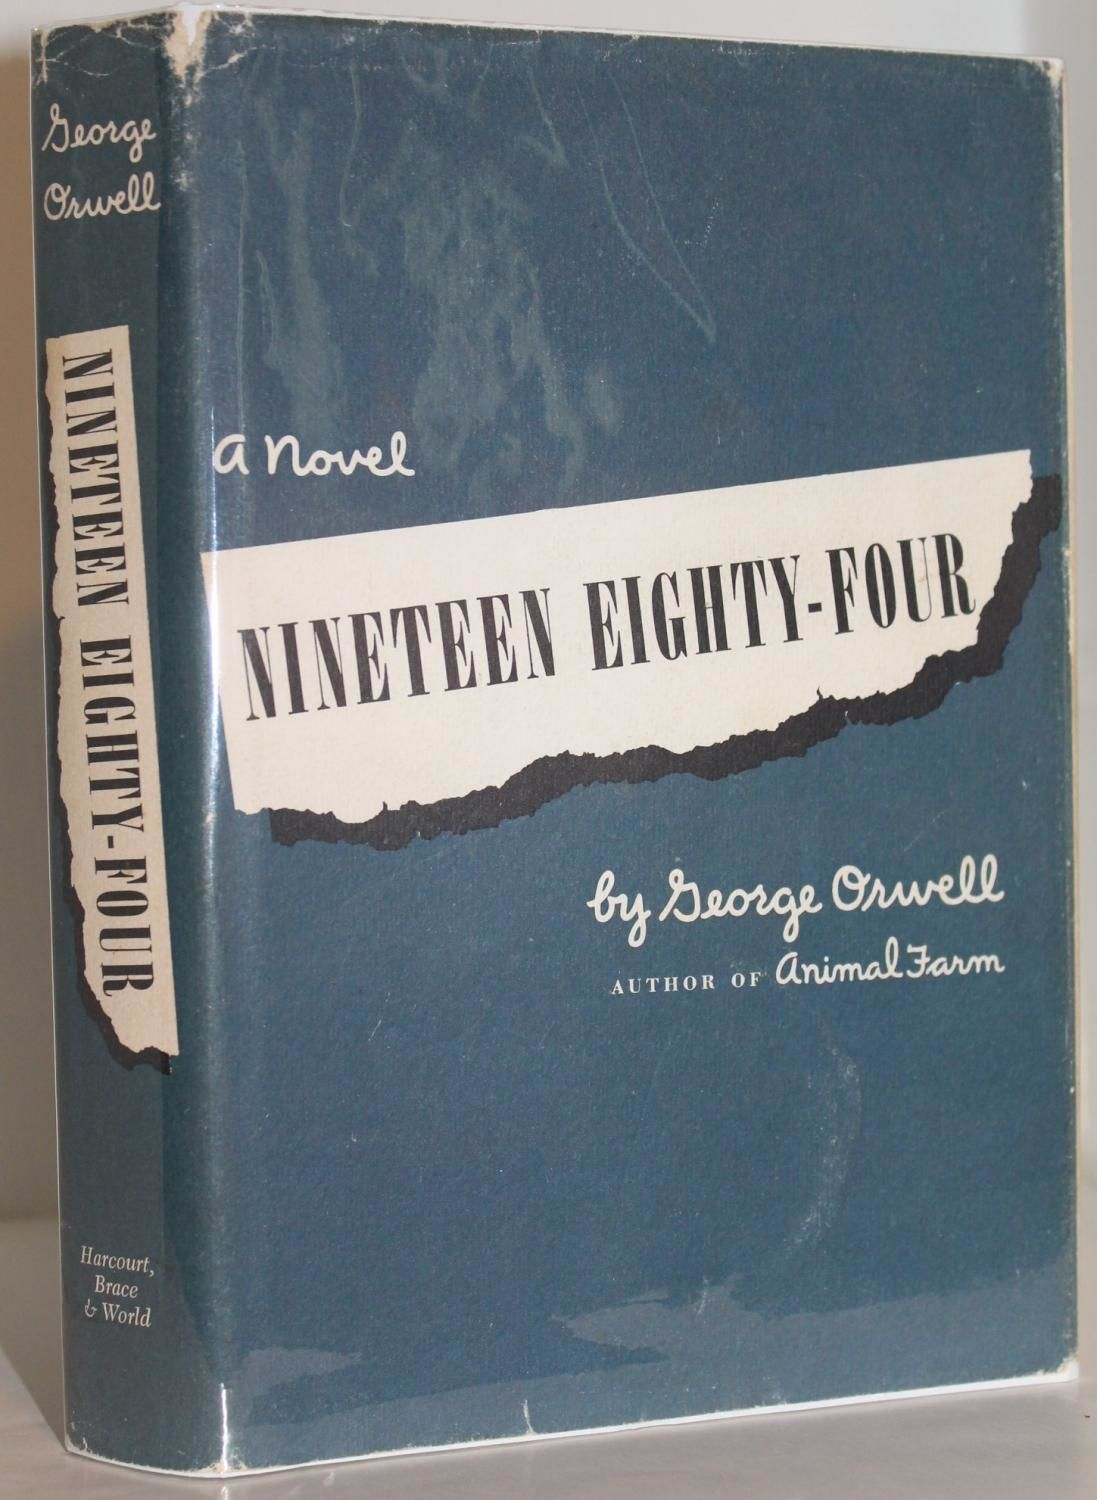 Nineteen Eighty Four By George Orwell Hardcover 1950 From Genesee Books Sku Abe 1503434648920